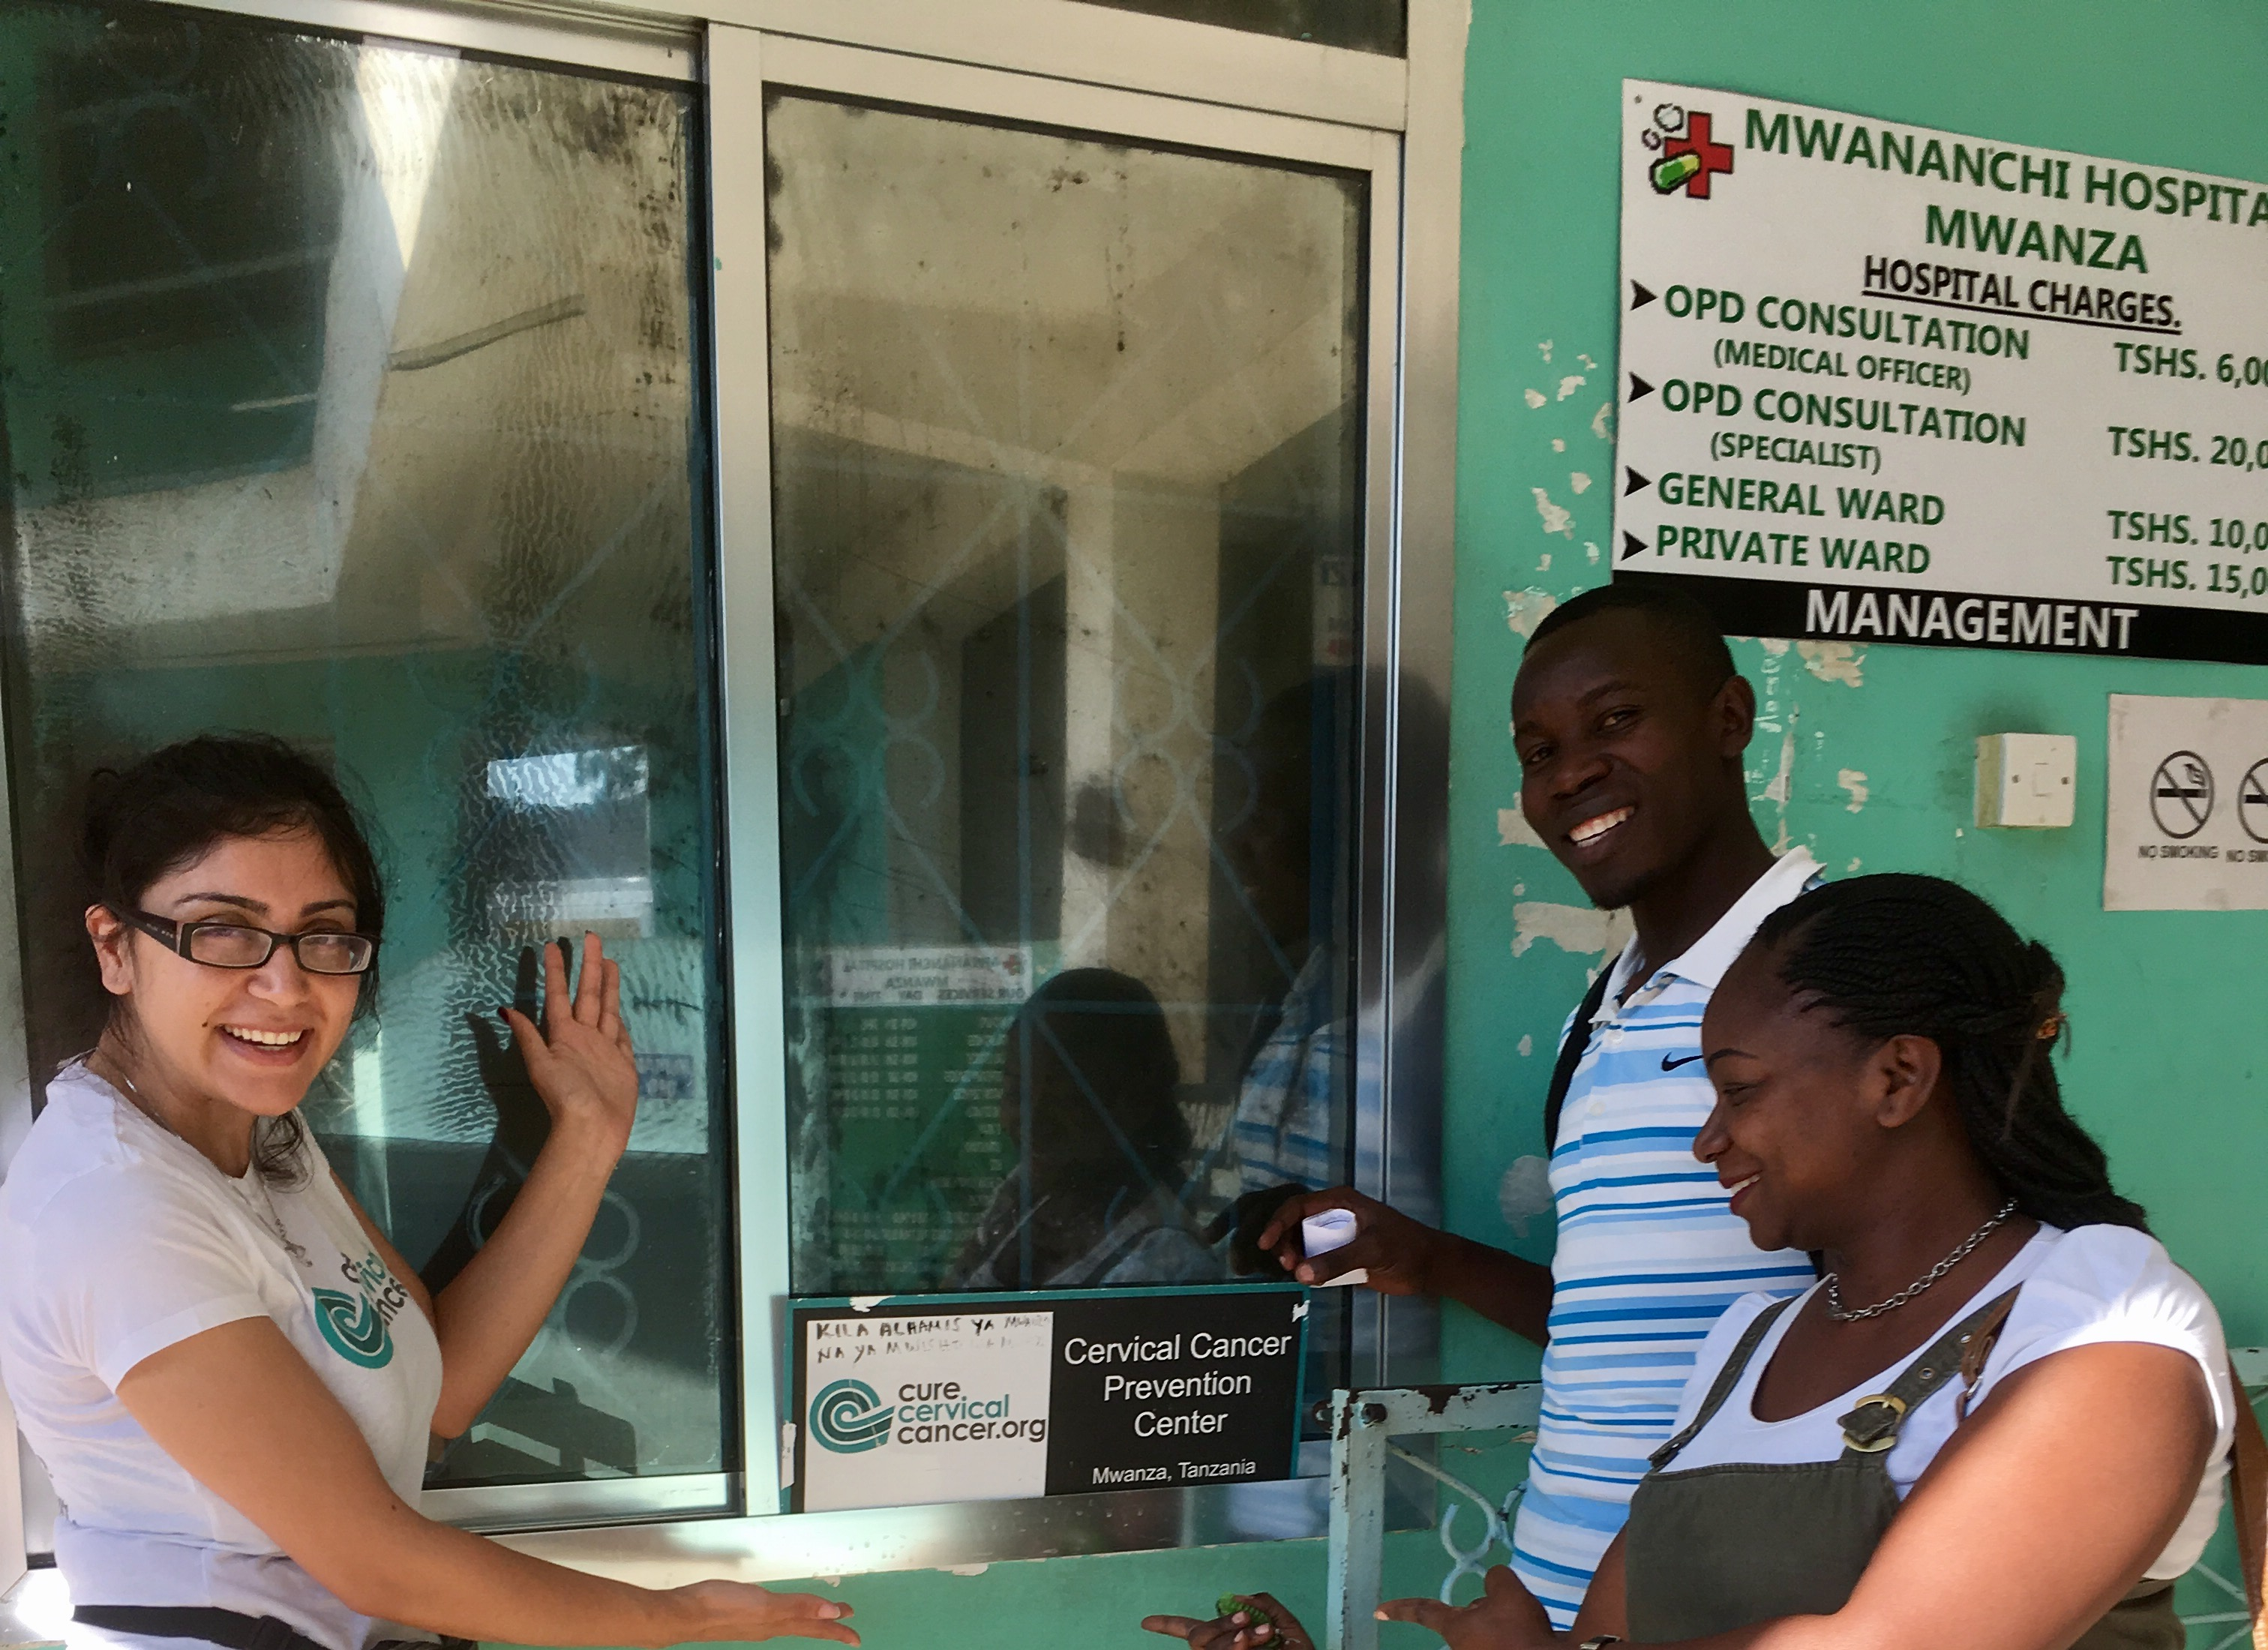 Our very own Program Coordinator Phorum Sheth standing with new CCC Global Trainee David and Matilda, our ground partner who′s currently overseeing CCC′s Cervical Cancer Prevention Program at Mwananchi Hospital in Mwanza, Tanzania.